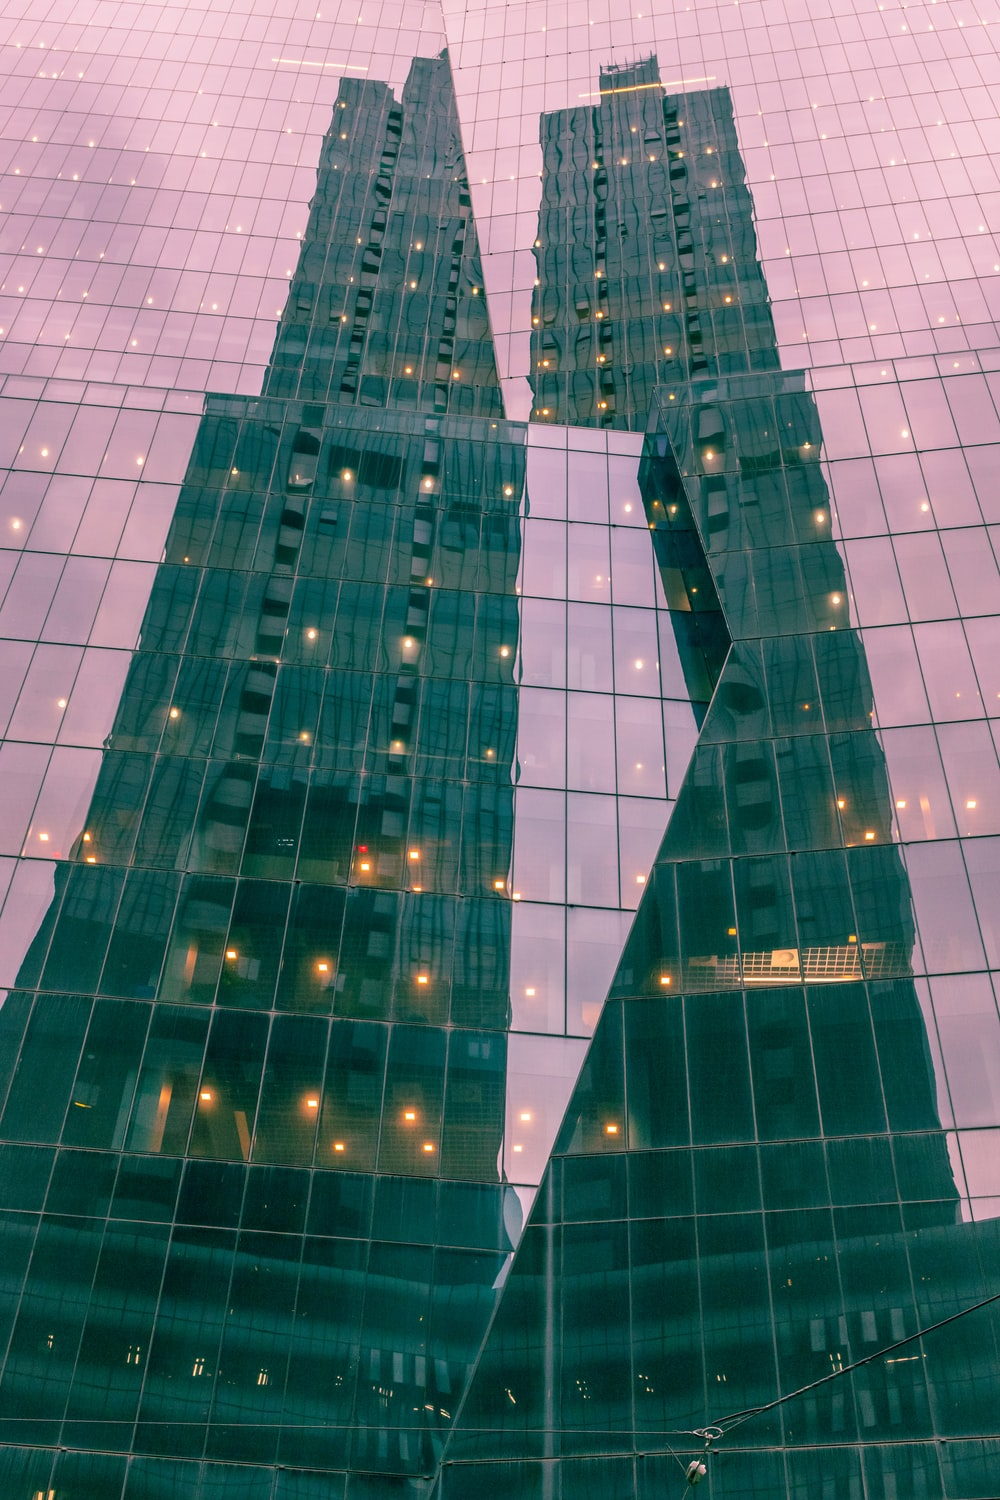 blue and white glass walled high rise building